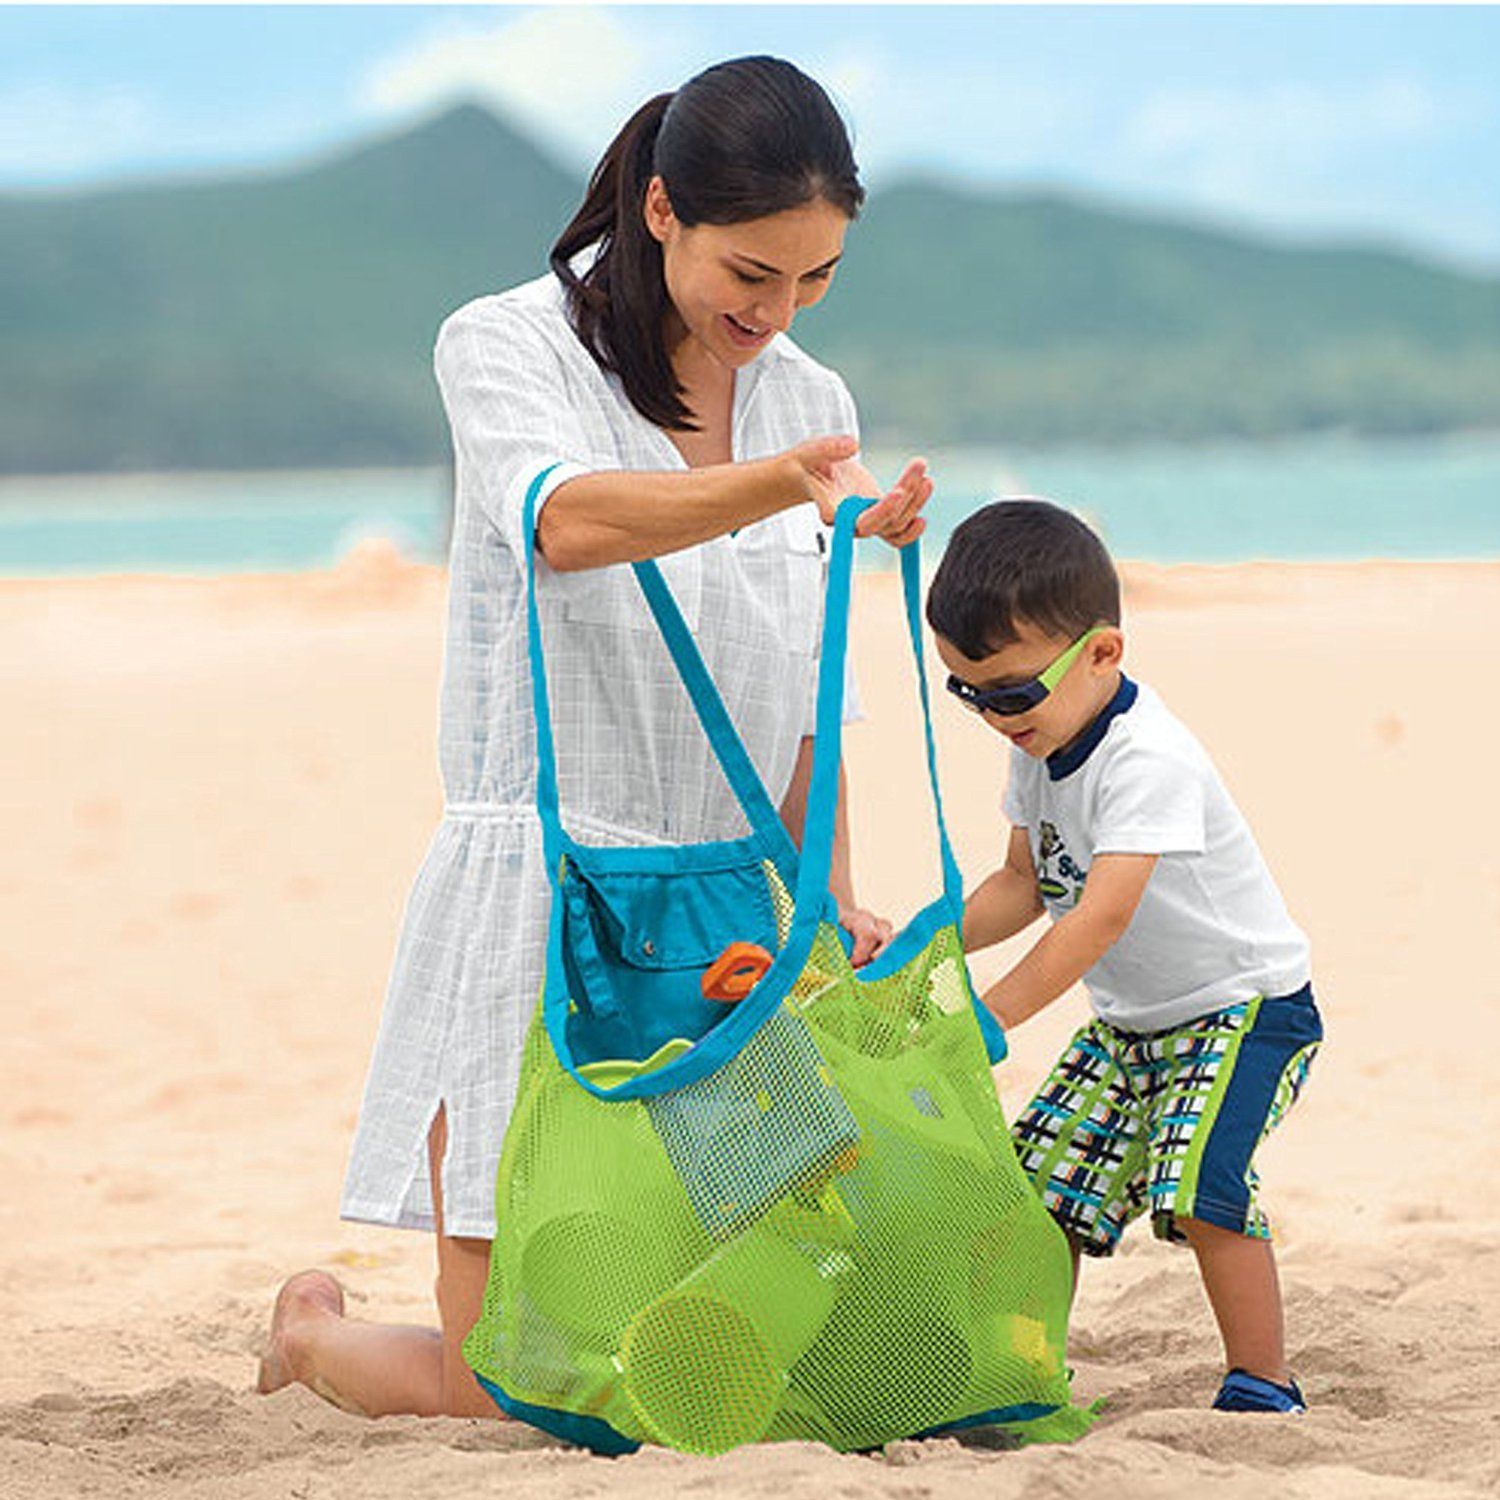 CITY Sand Away Beach Mesh Bag Tote sand away beach treasures Starfish shell bag Toys Kids Sandboxes lace shell starfish beach anklets